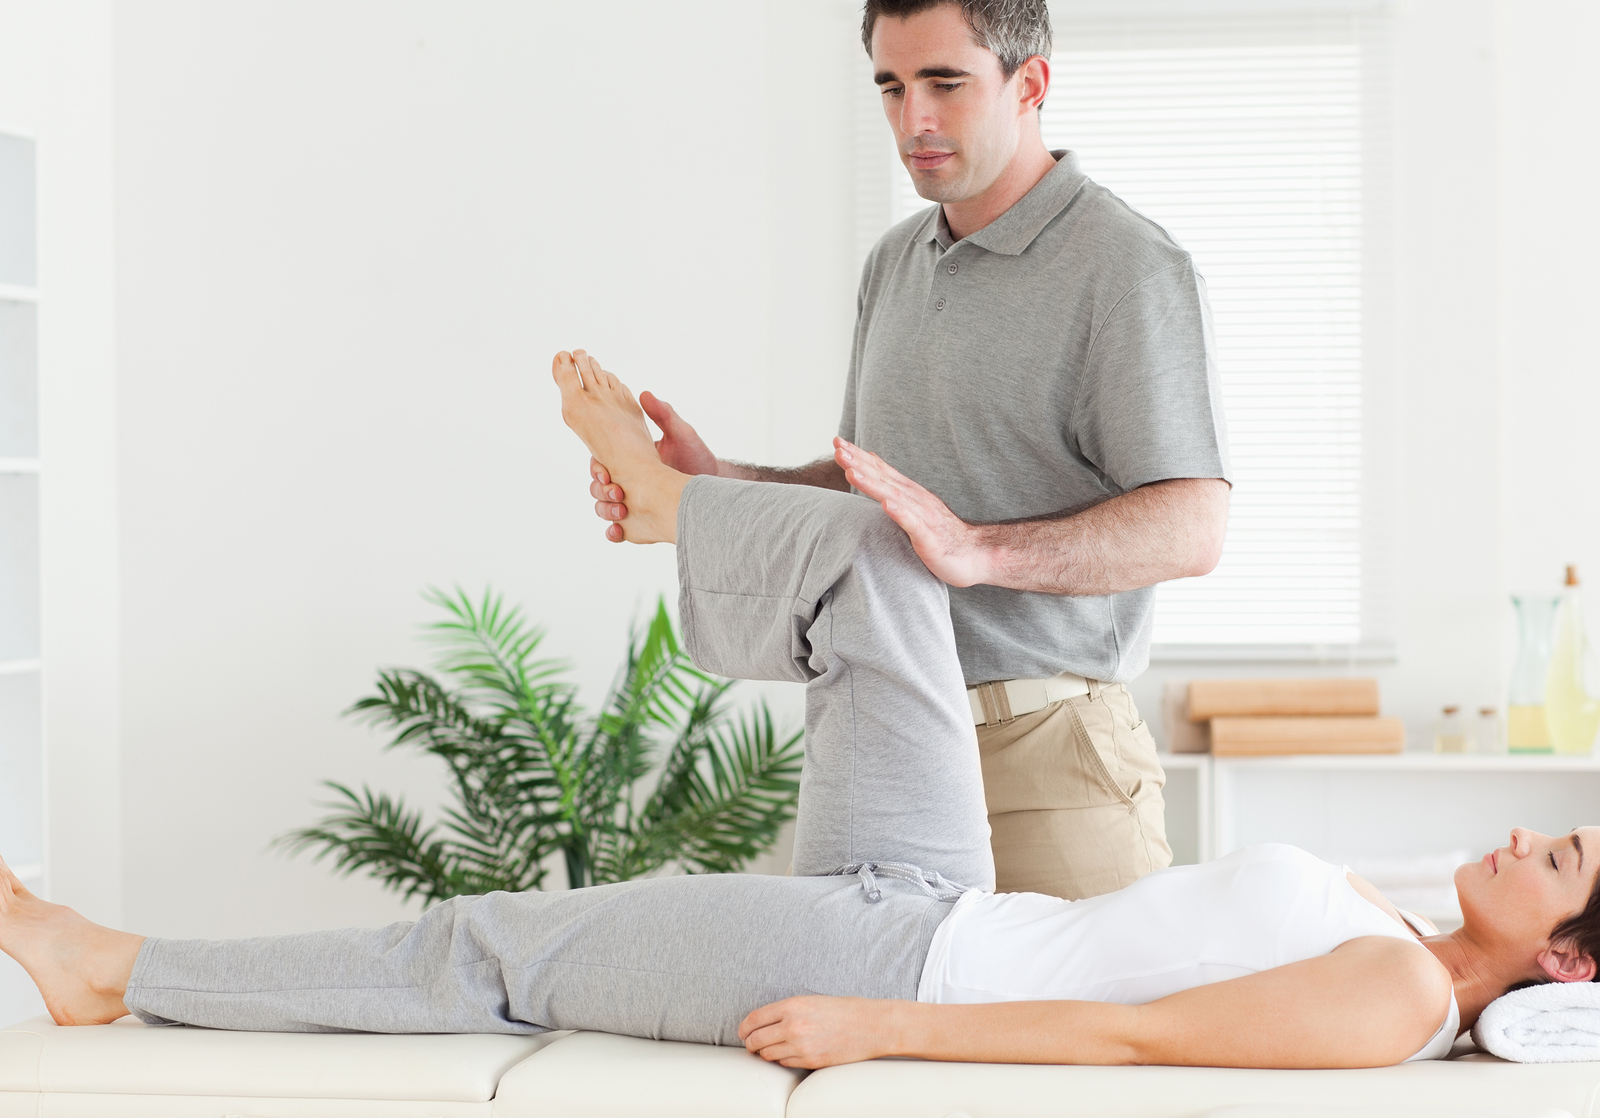 Chiropractor conditions treated